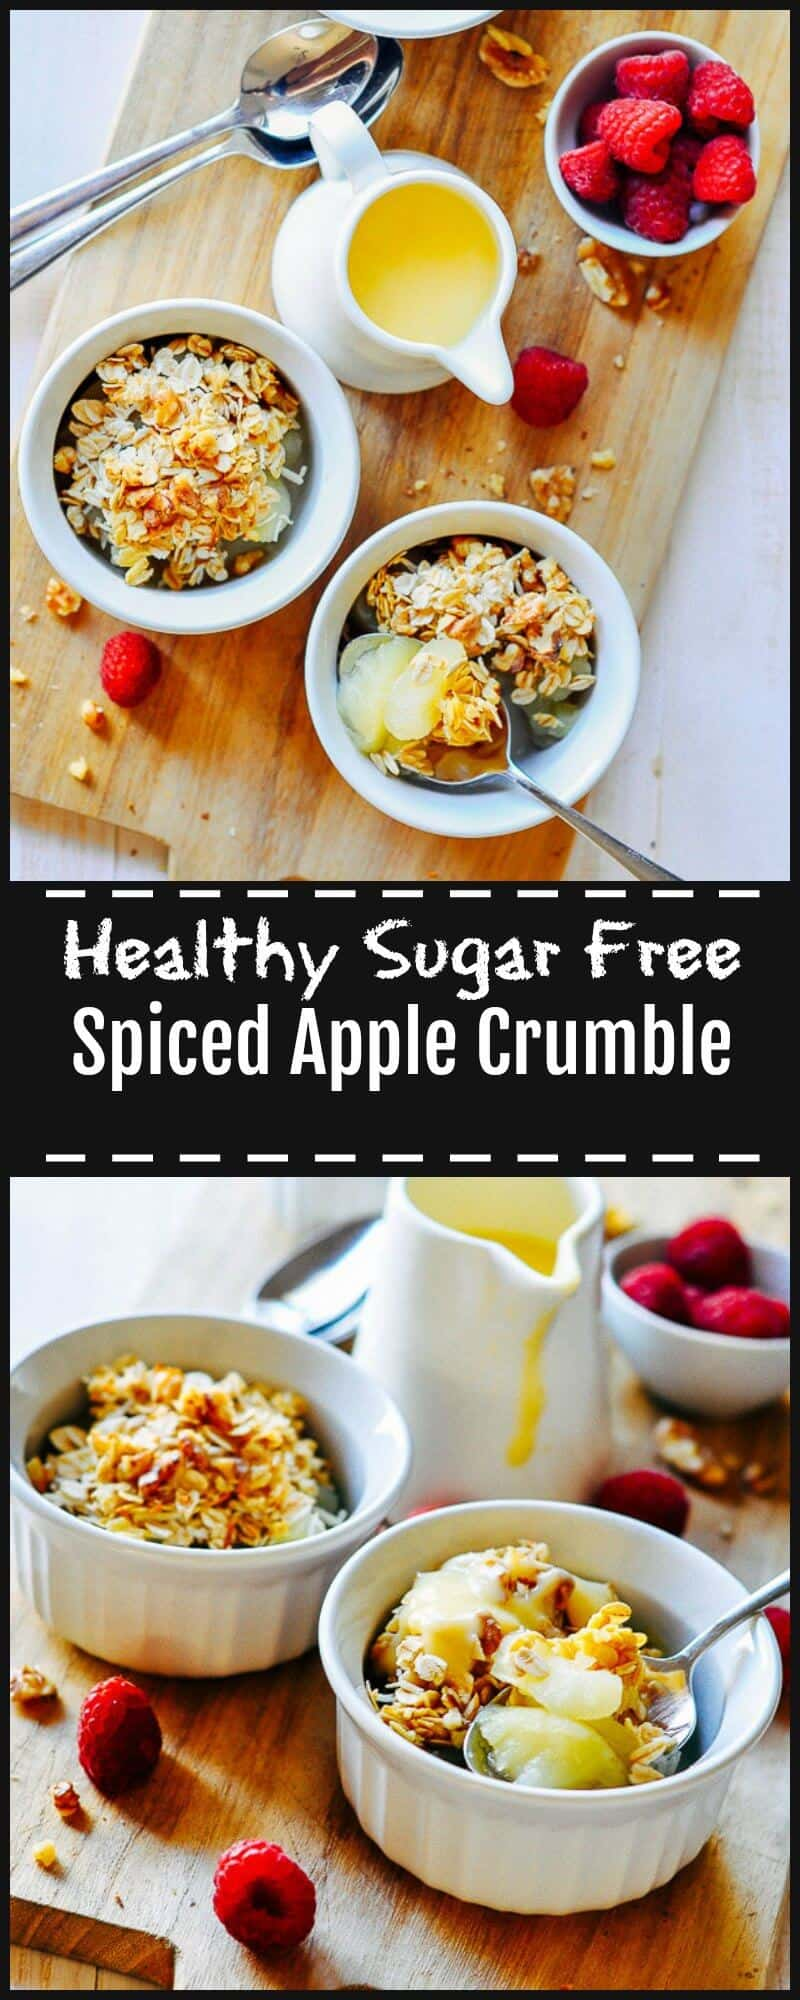 This Sugar Free Apple Crumble is an easy and delicious healthy dessert for any time of the year or season.  It has rich plump granny smith apples, warming spices and a slight tang of lime.  Naturally sweetened from the apples and a touch of stevia.